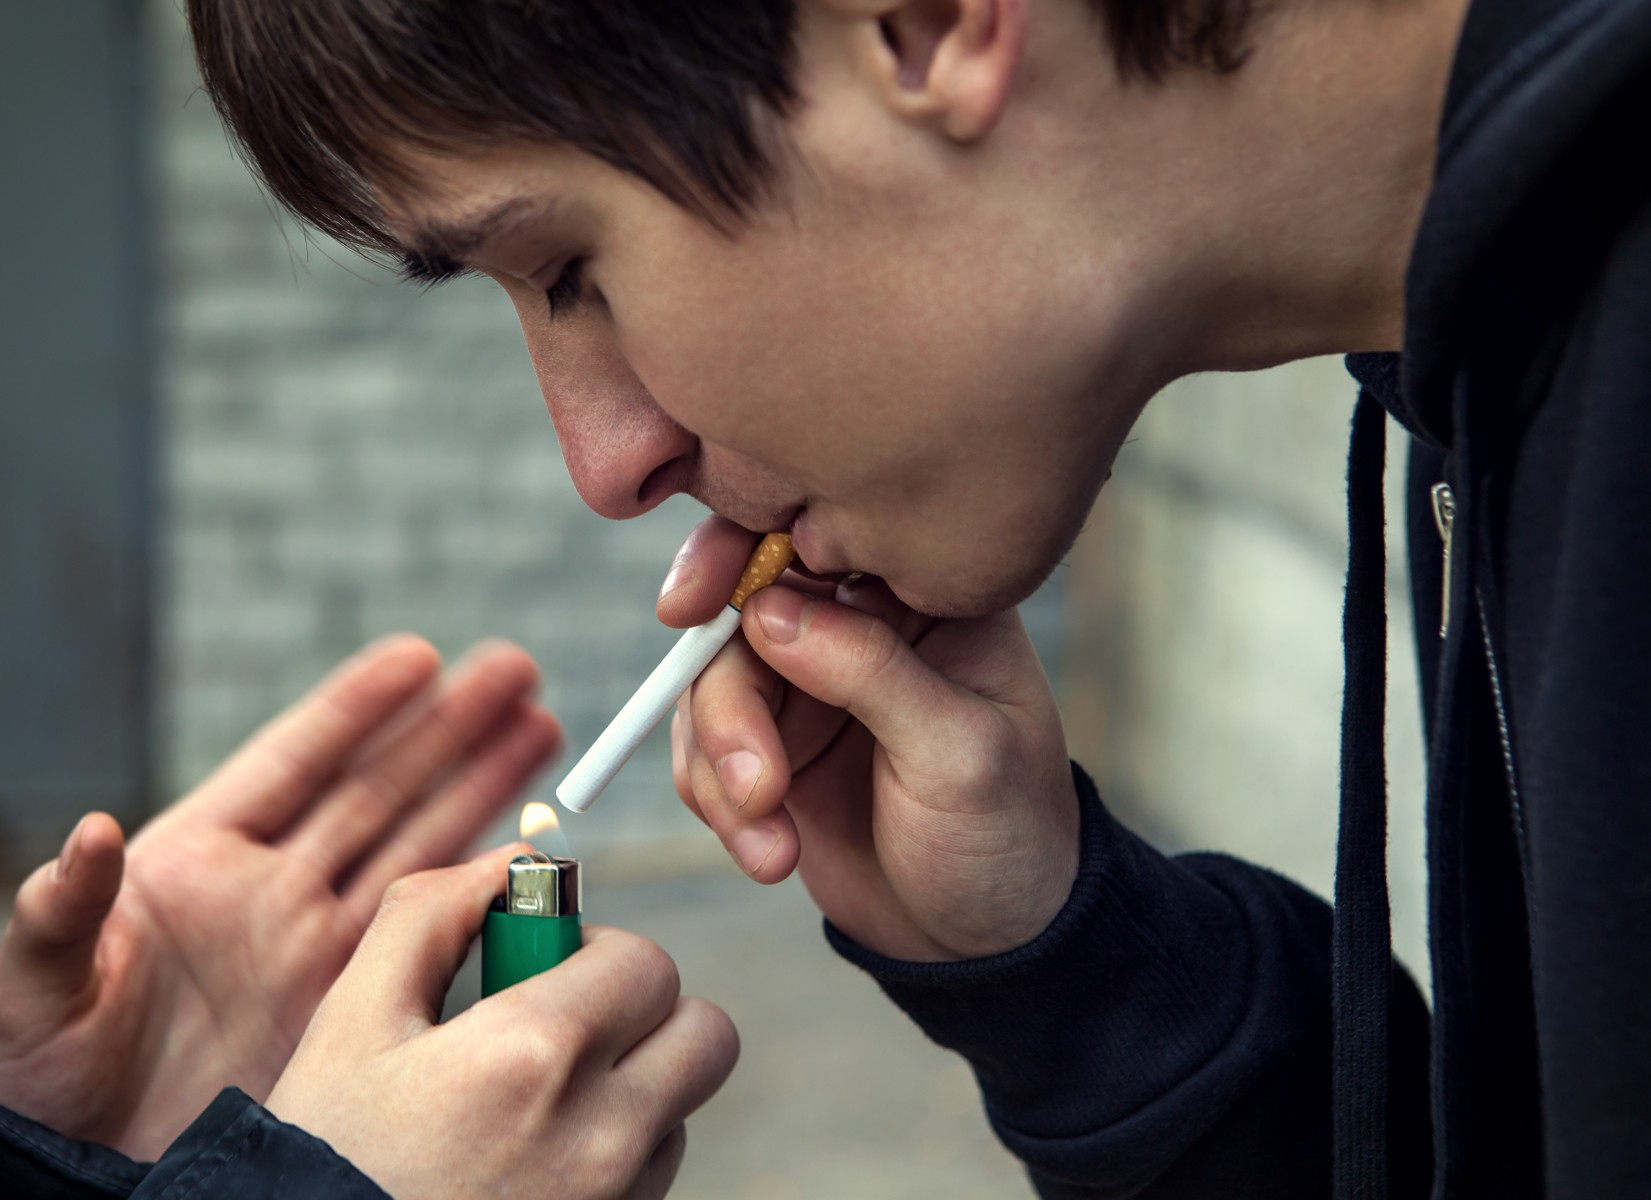 Physical abuse and neglect of kids at high risk for maltreatment is associated with a more serious smoking habit.